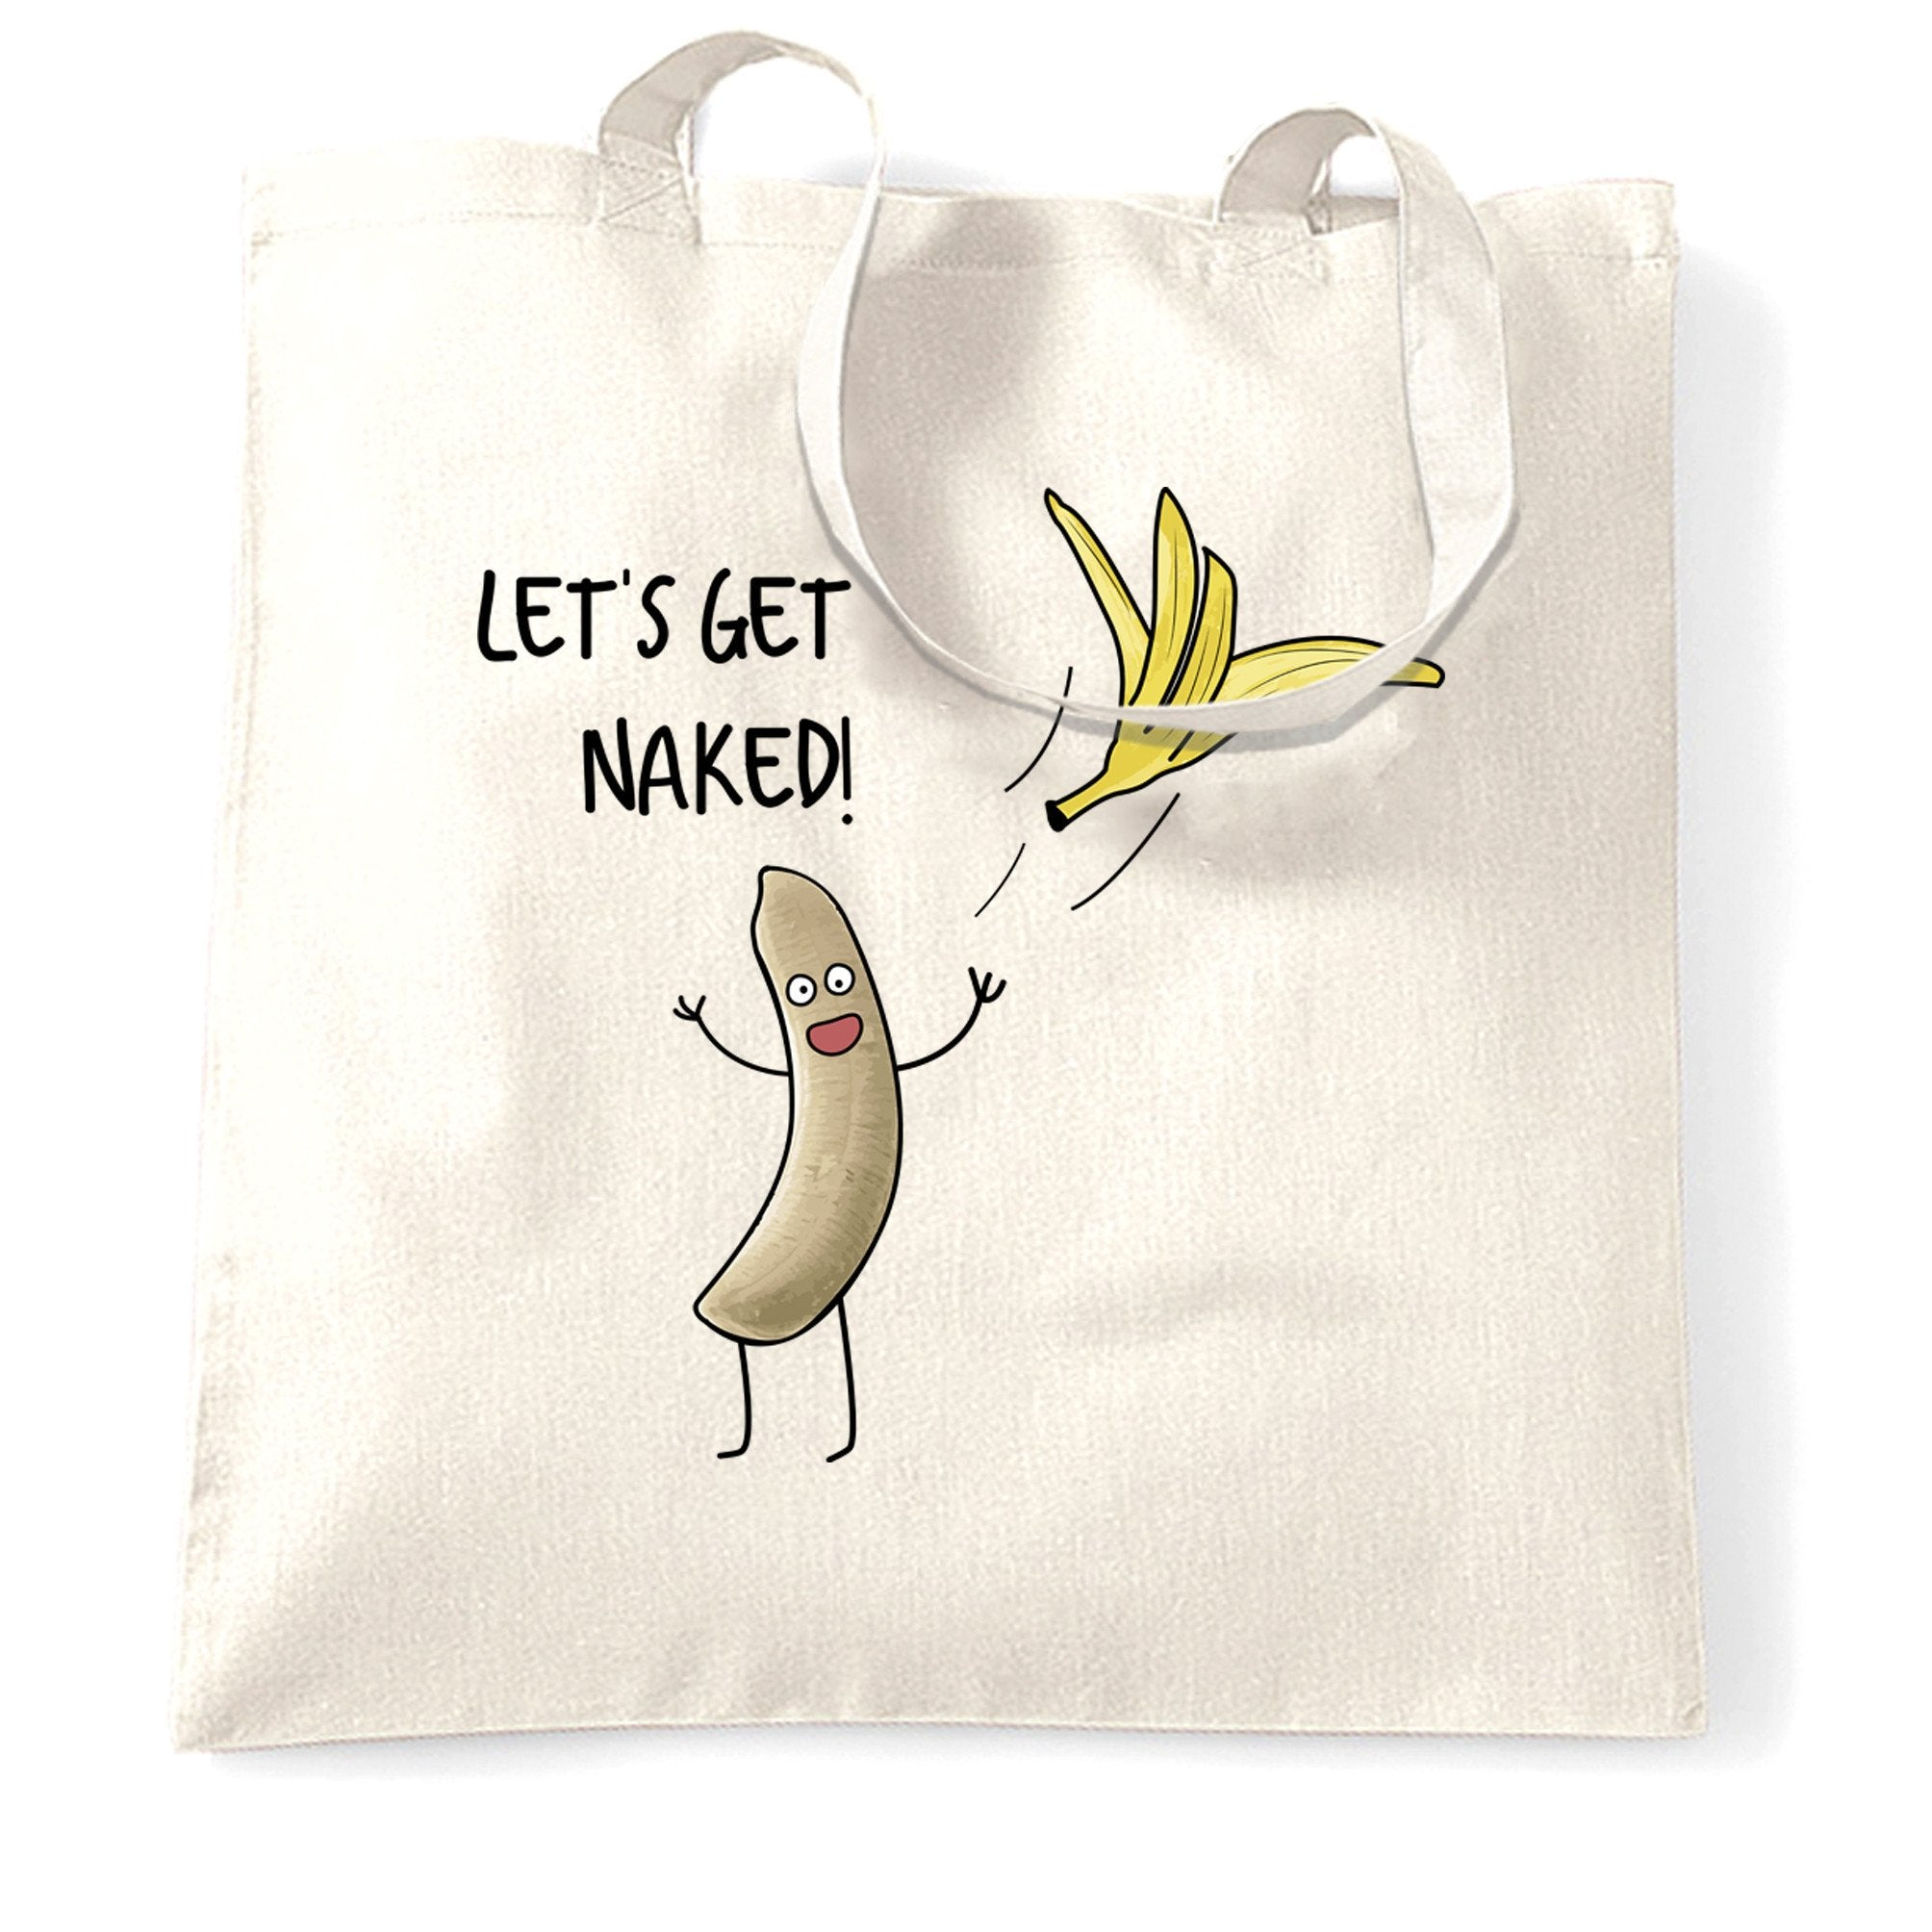 Novelty Tote Bag Let's Get Naked Banana Slogan